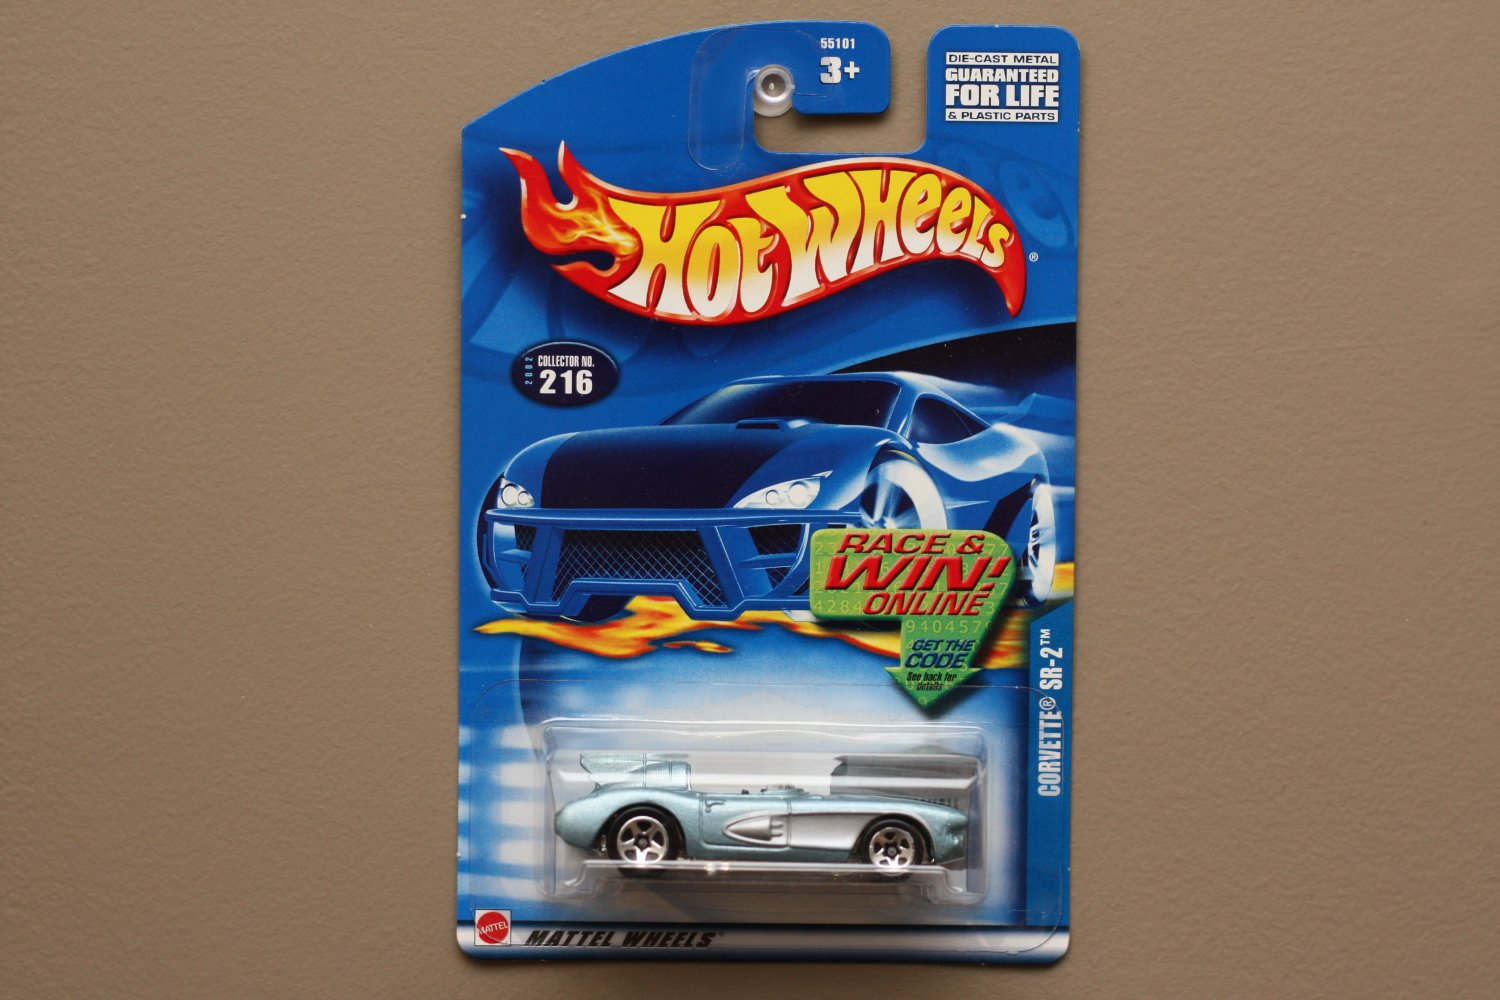 Hot Wheels 2002 Collector Series Corvette SR-2 (pearlescent blue)